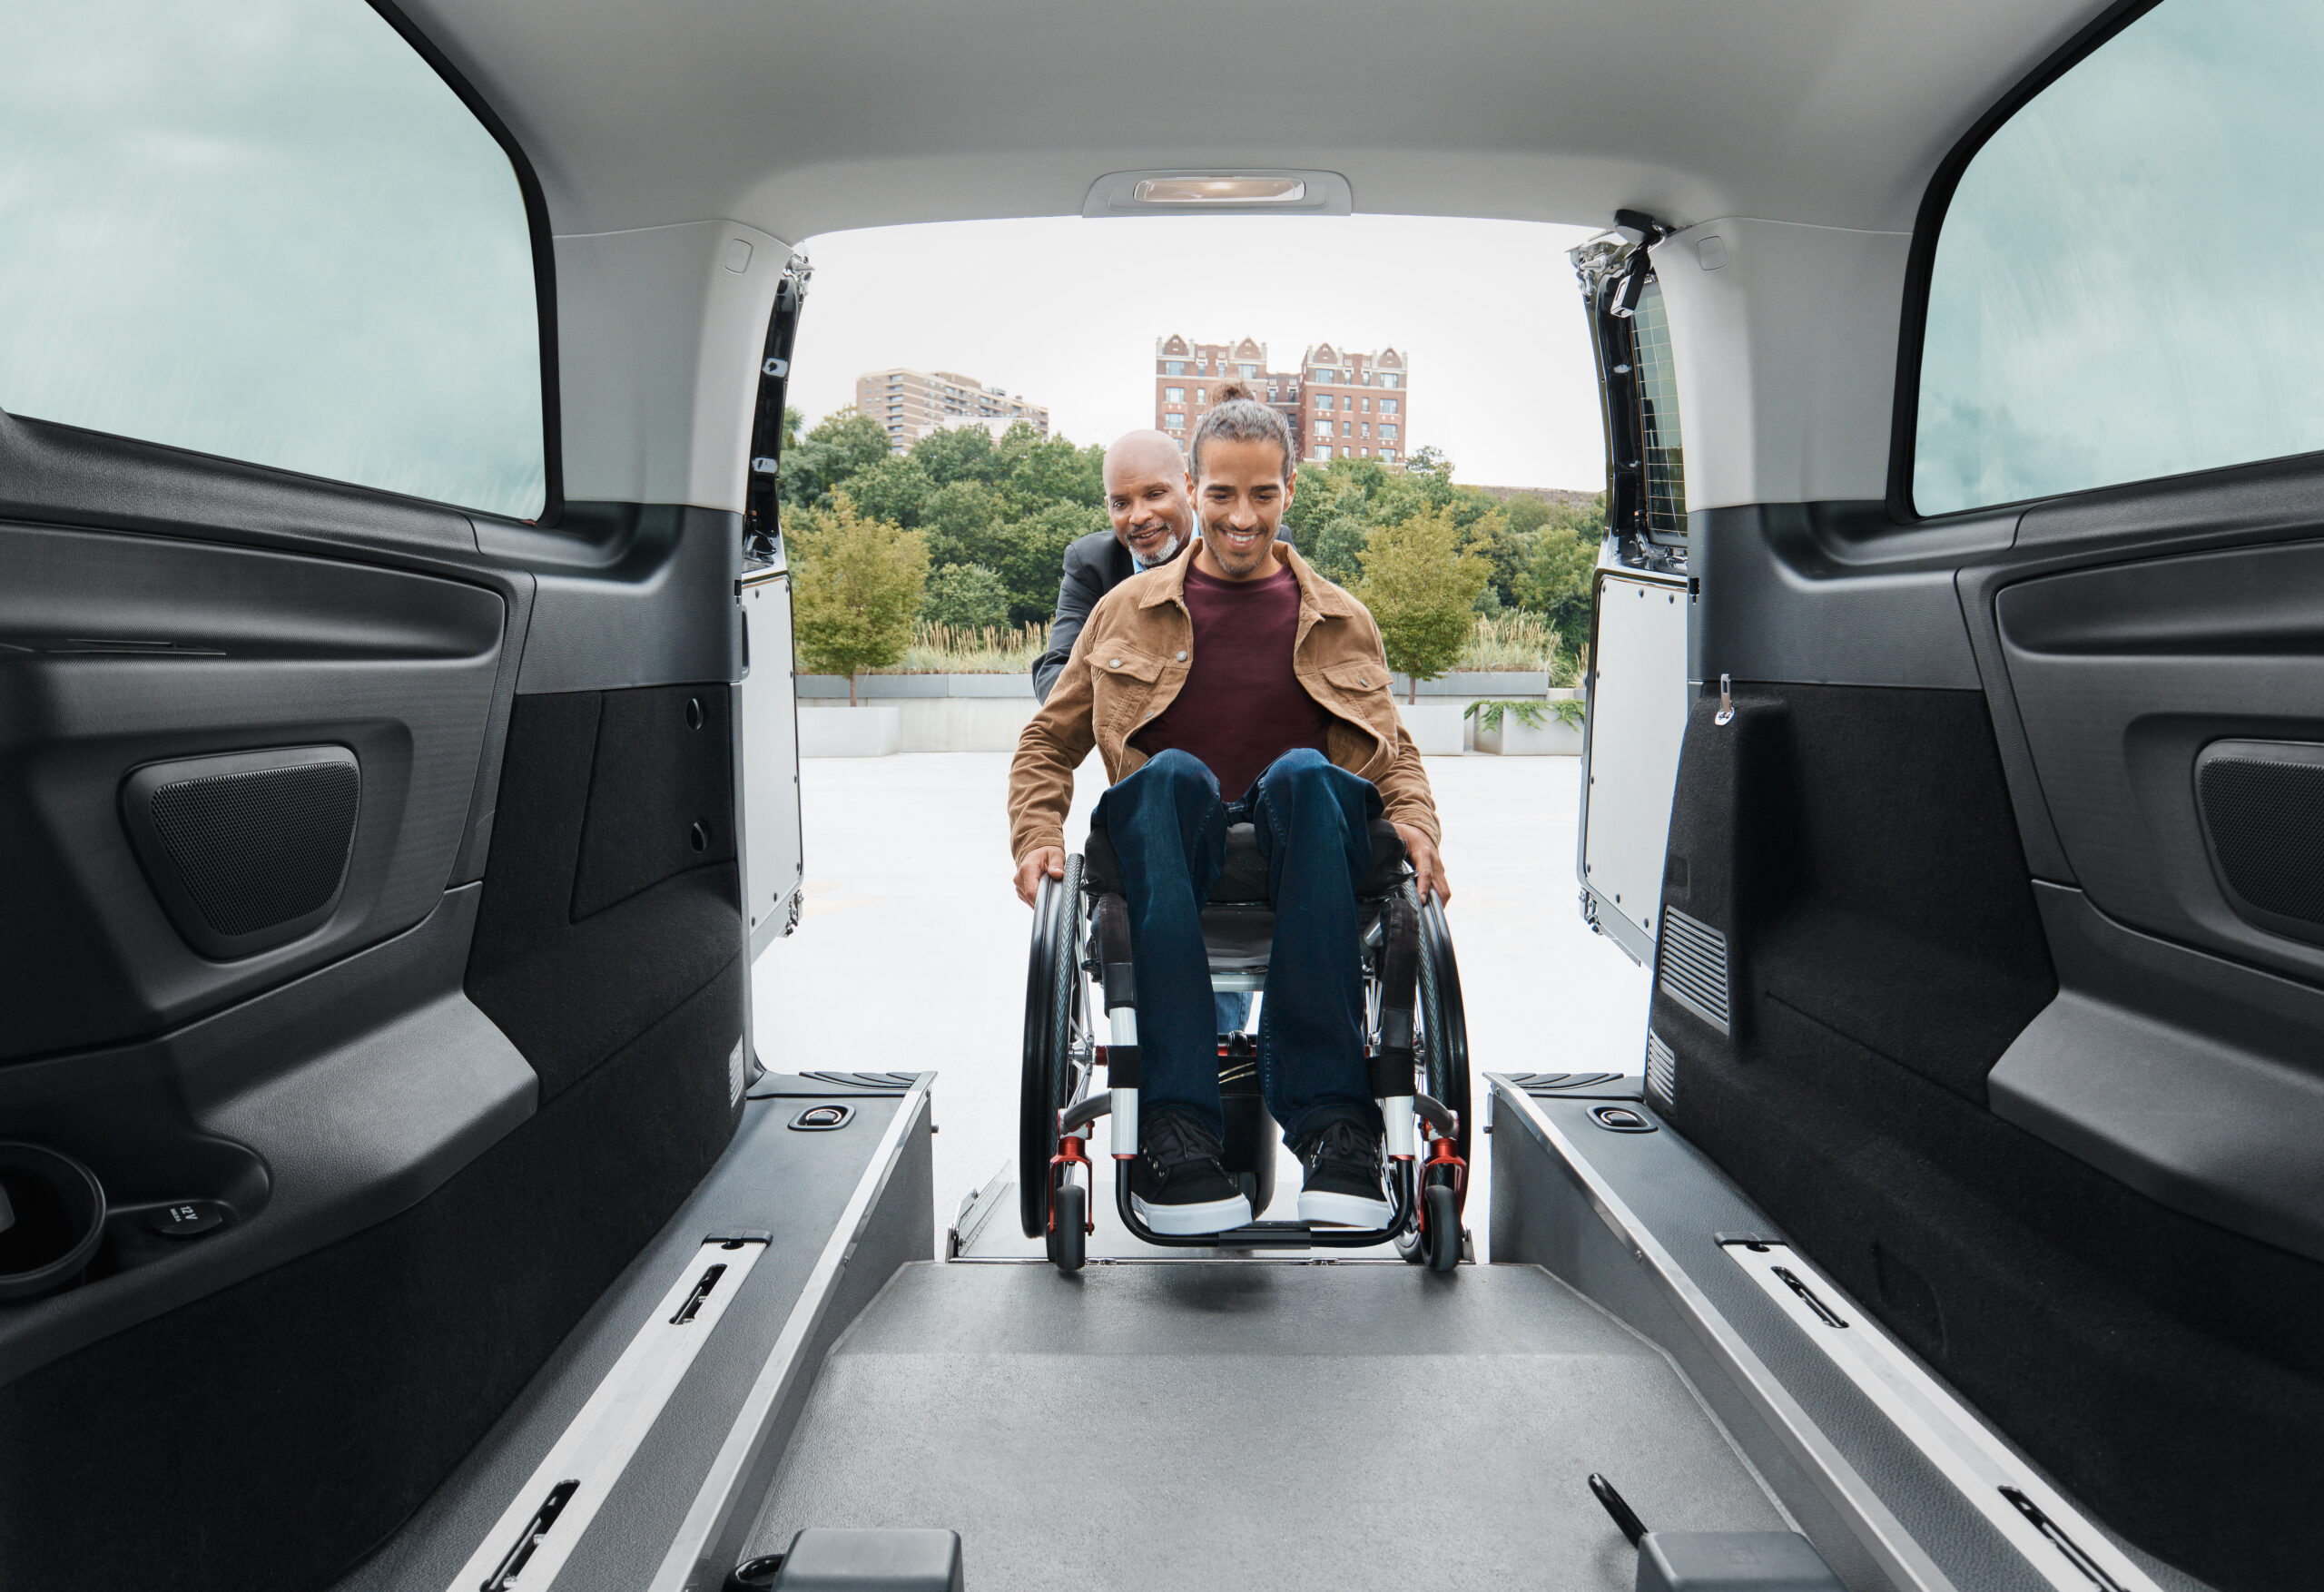 On-demand accessibility for all